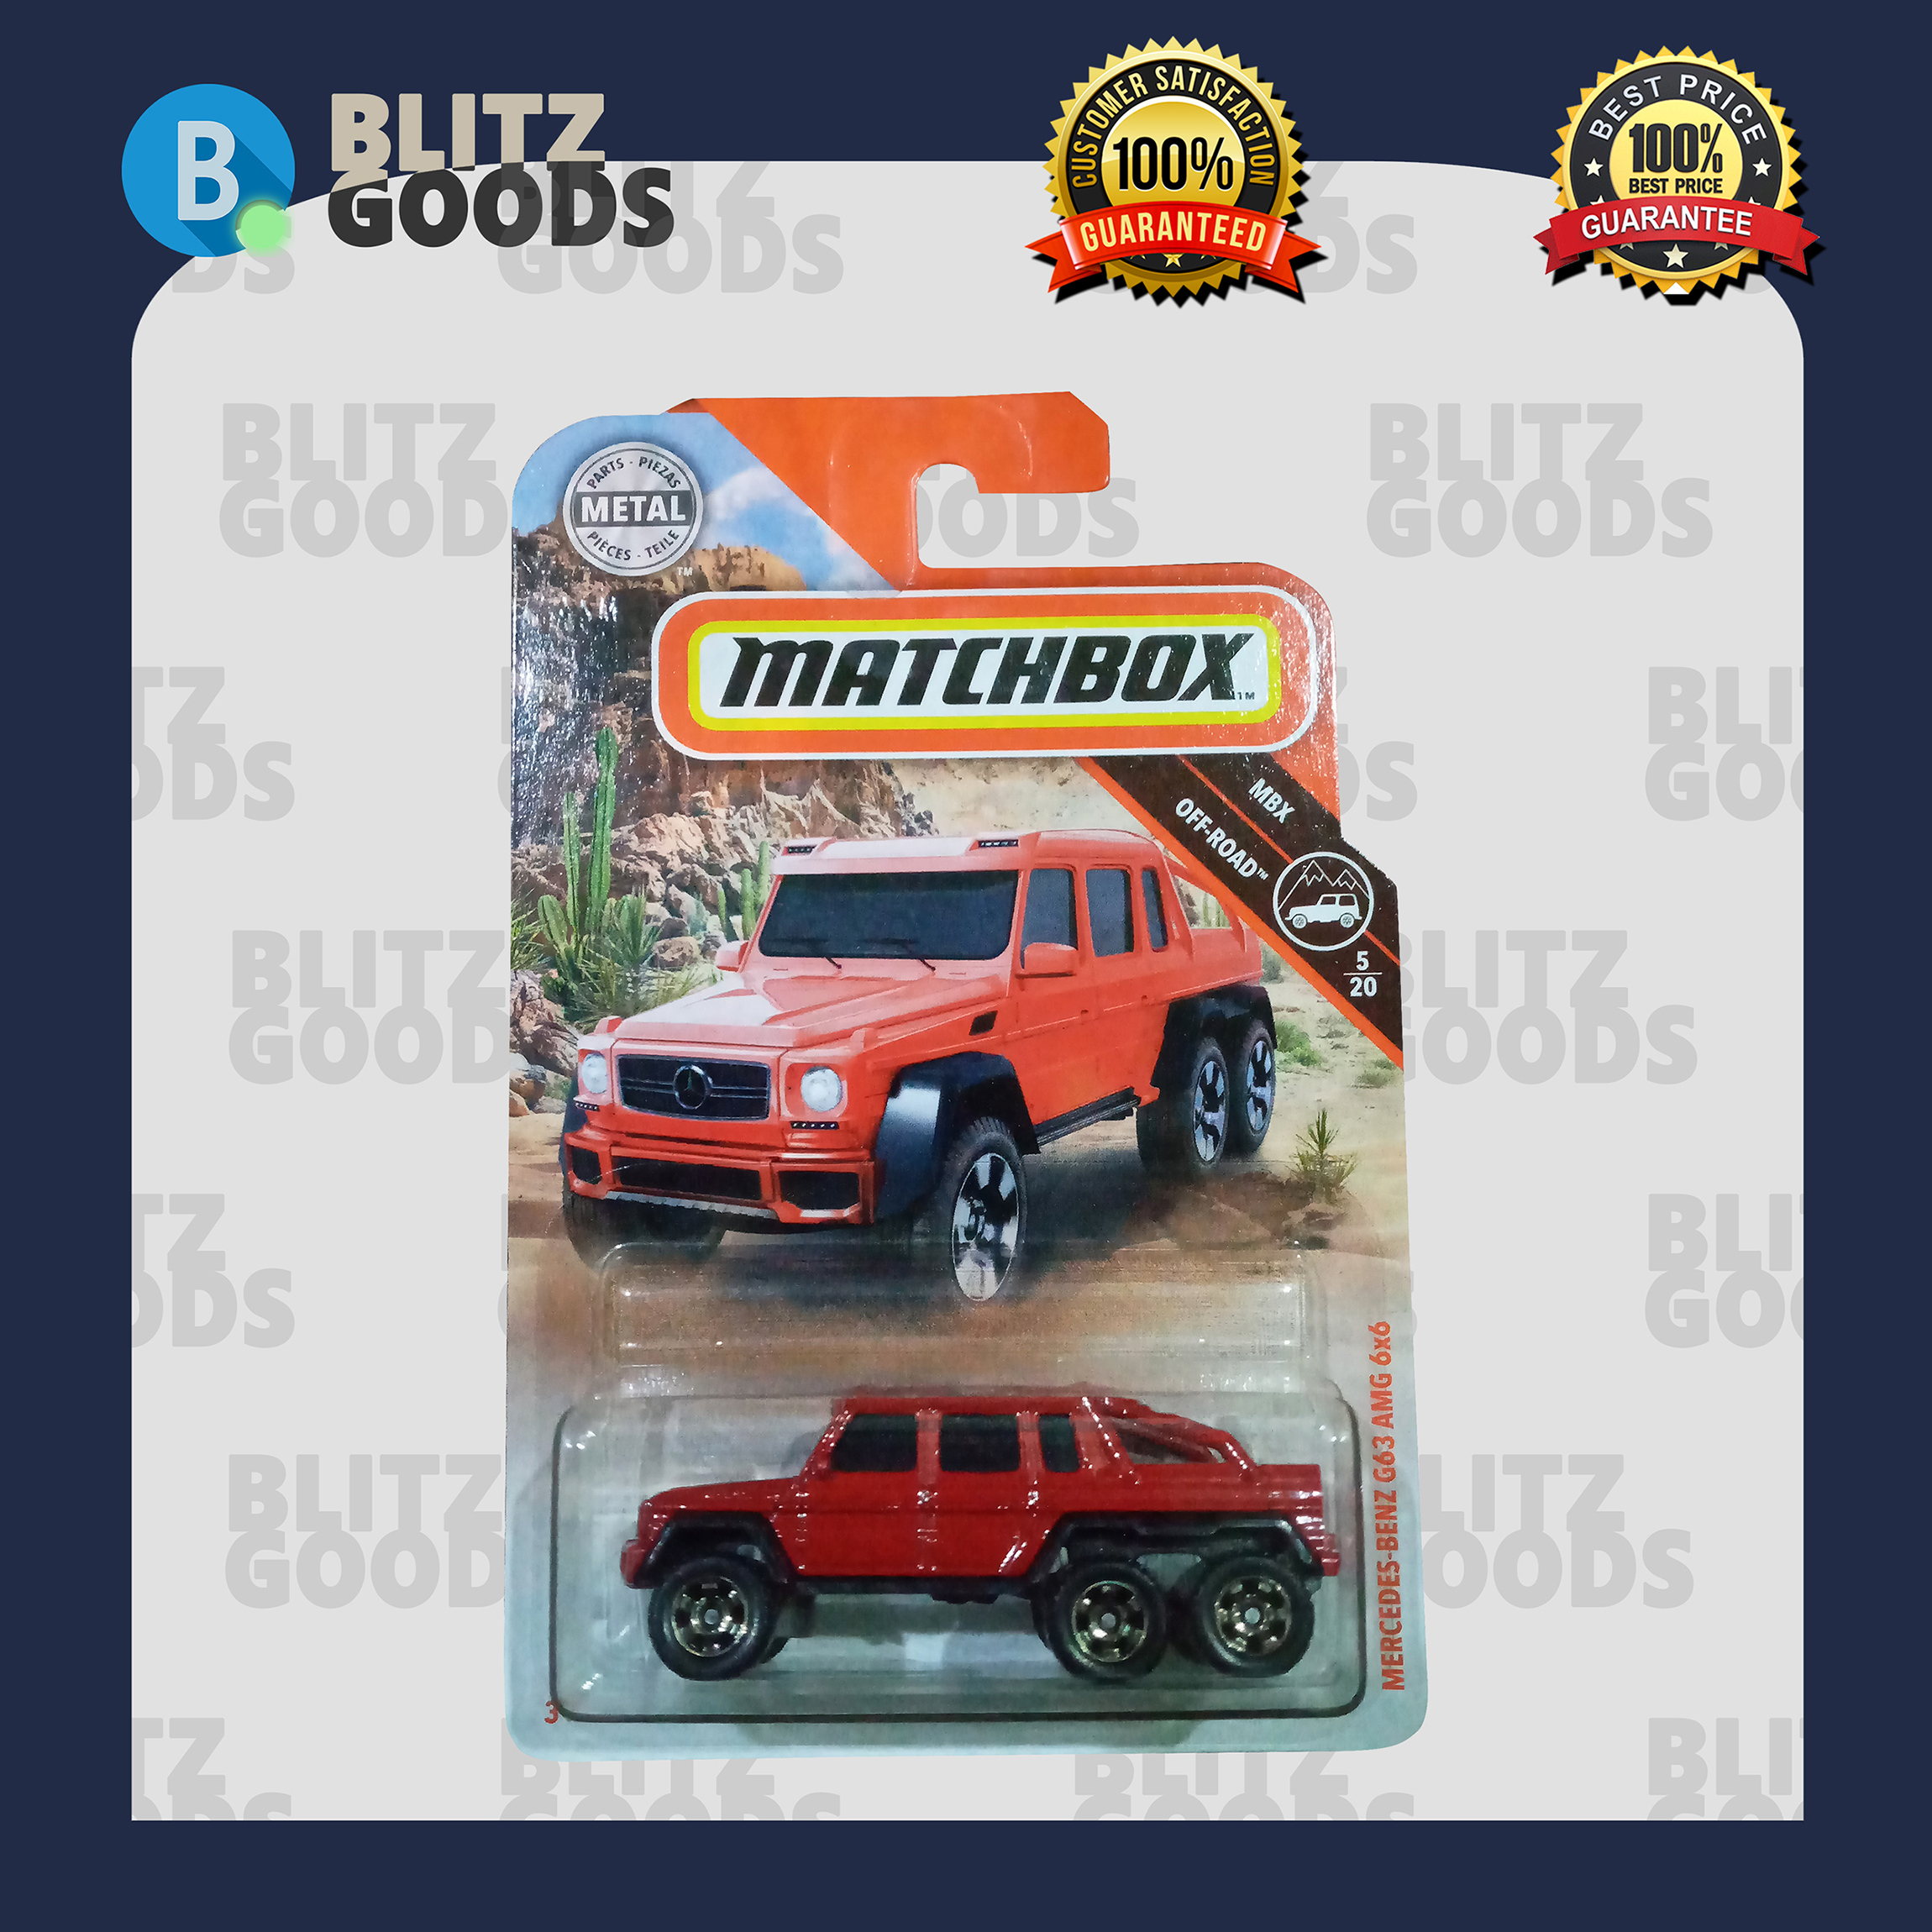 Matchbox Benz G63 Amg 6x6 Buy Sell Online Die Cast Vehicles With Cheap Price Lazada Ph